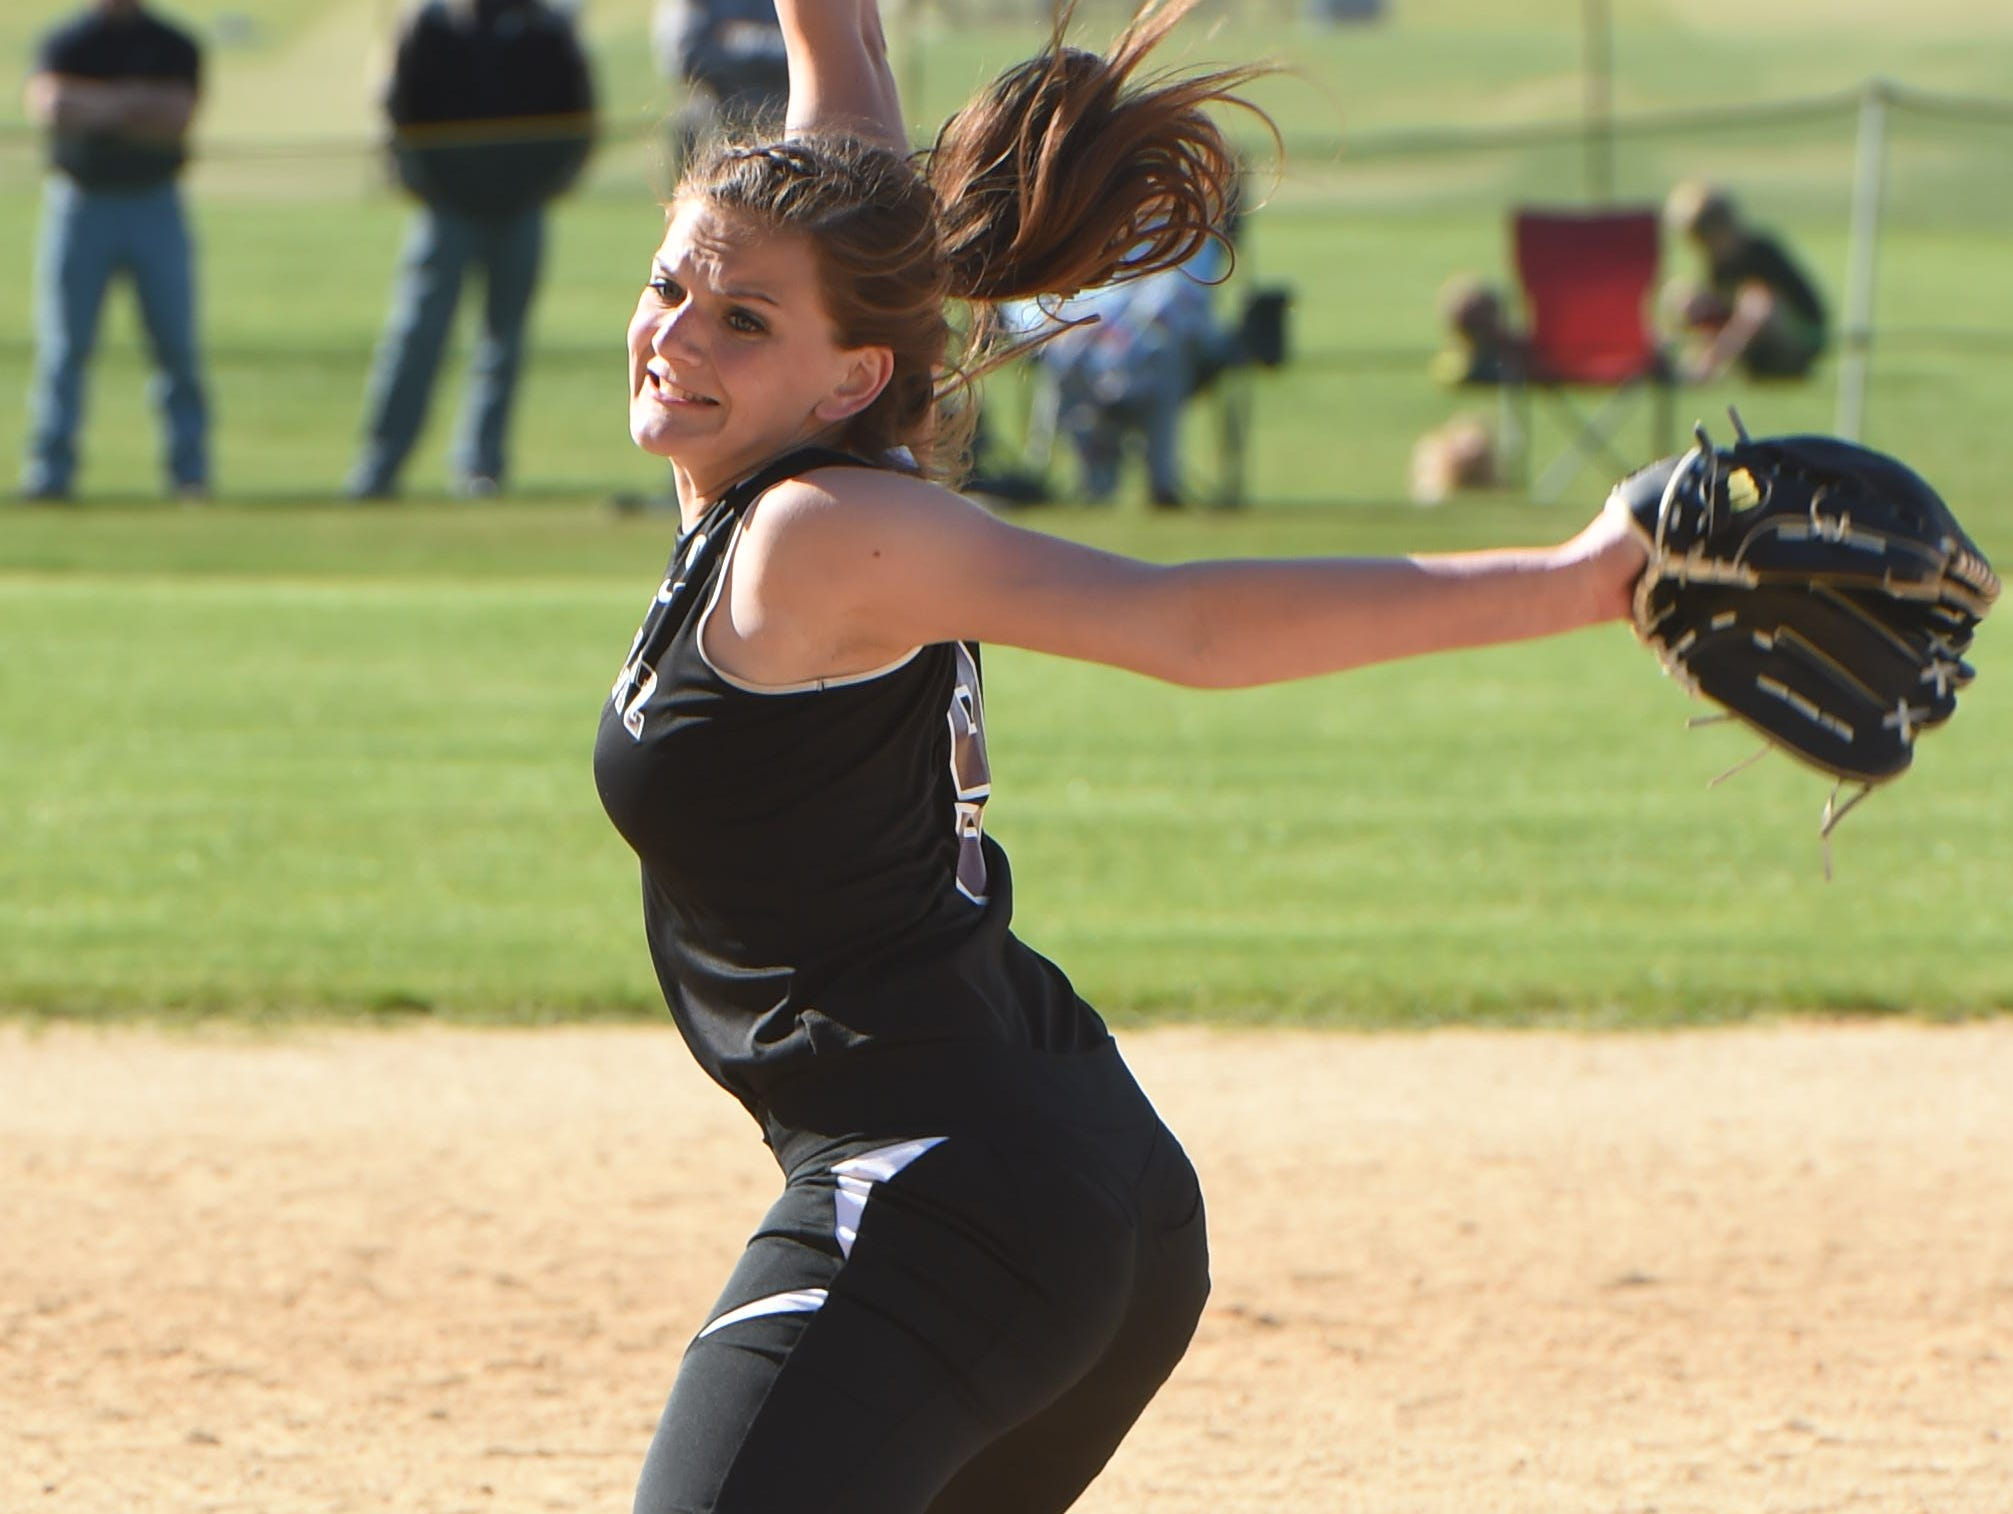 New Paltz's Bridget Bennett winds up for a pitch during Monday's game against Marlboro.